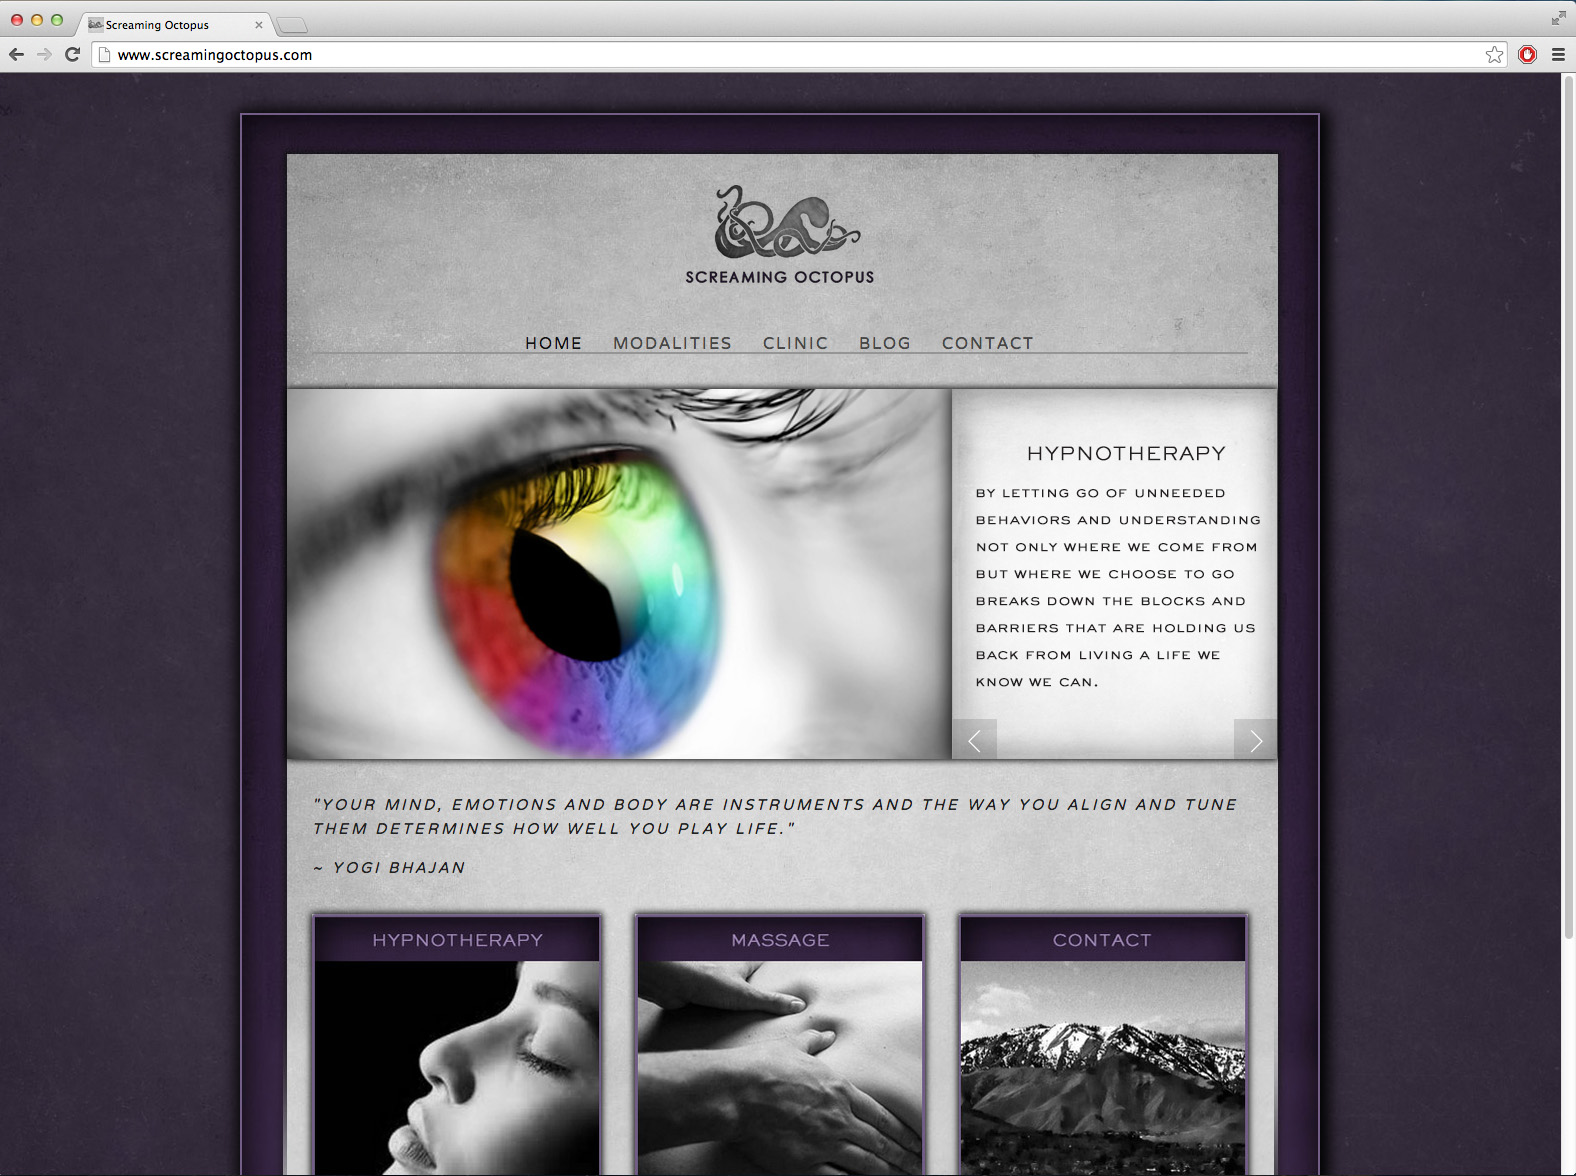 New 2014 website adapted to focus on client's shift toward spirituality and advanced techniques for deeper physical and mental therapy.